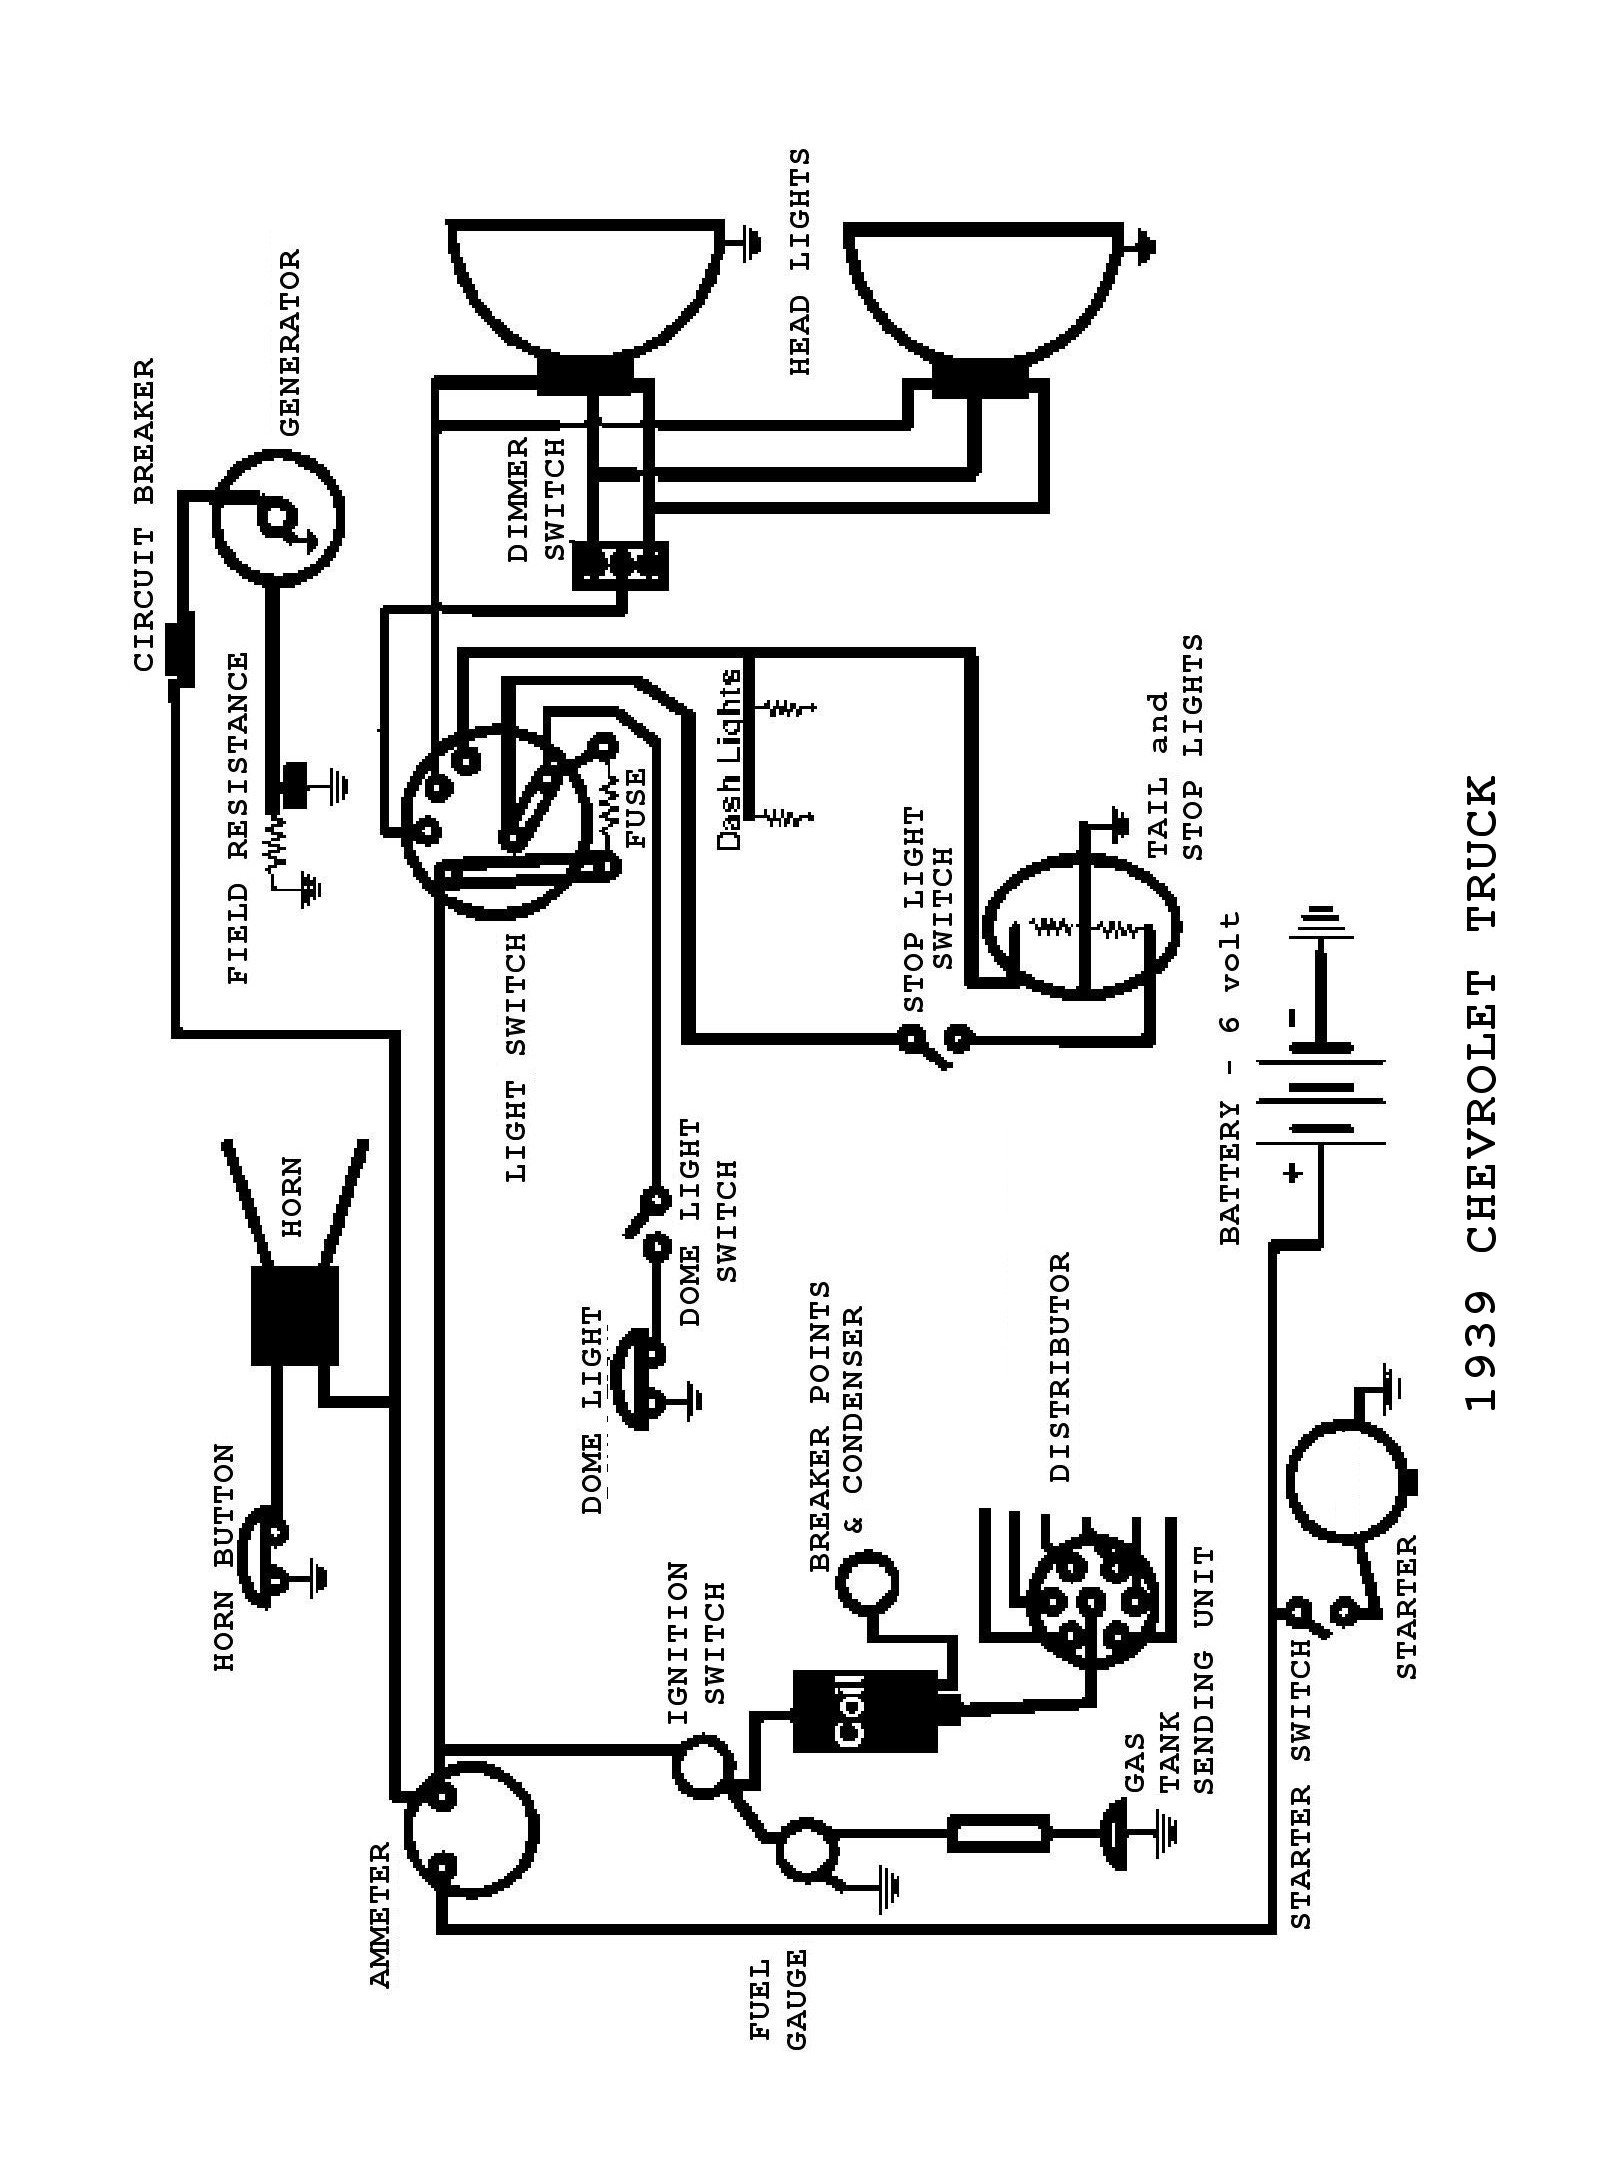 1977 dodge ignition wiring diagram  1977  free engine